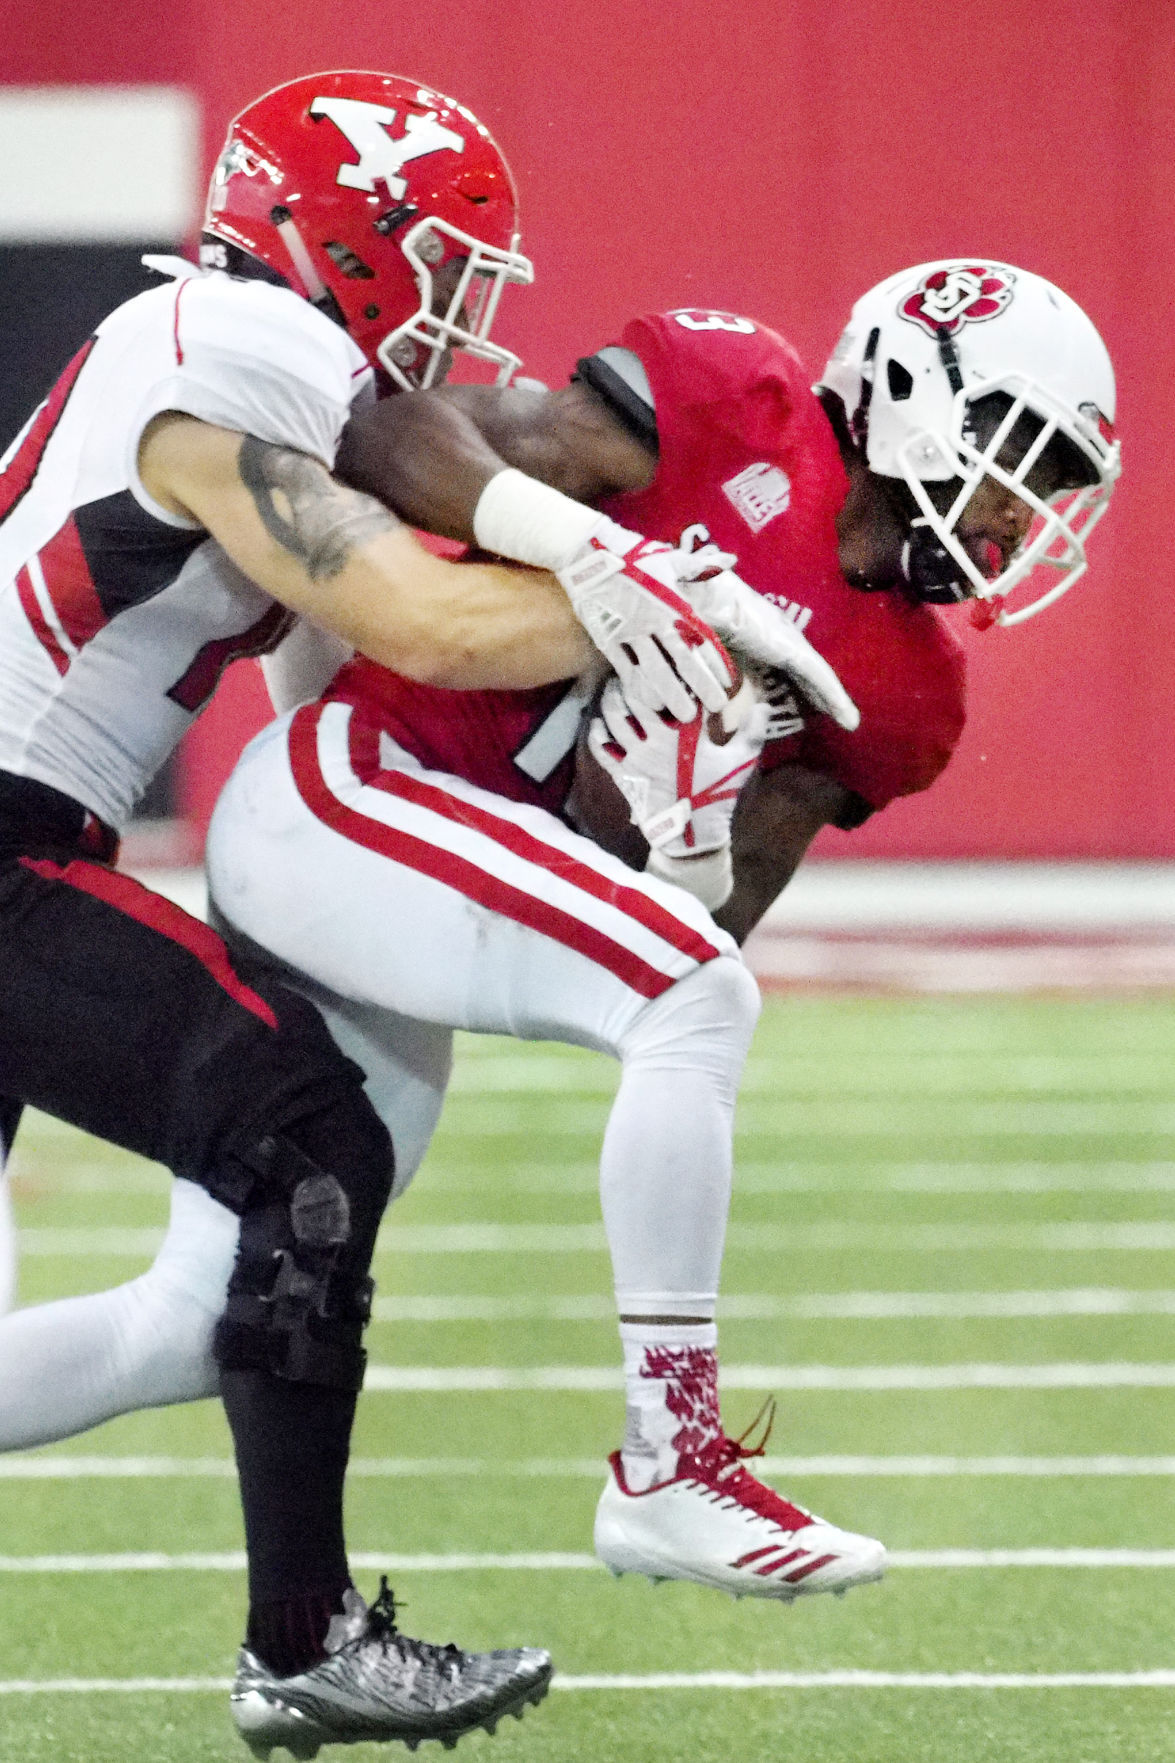 Youngstown State at South Dakota football